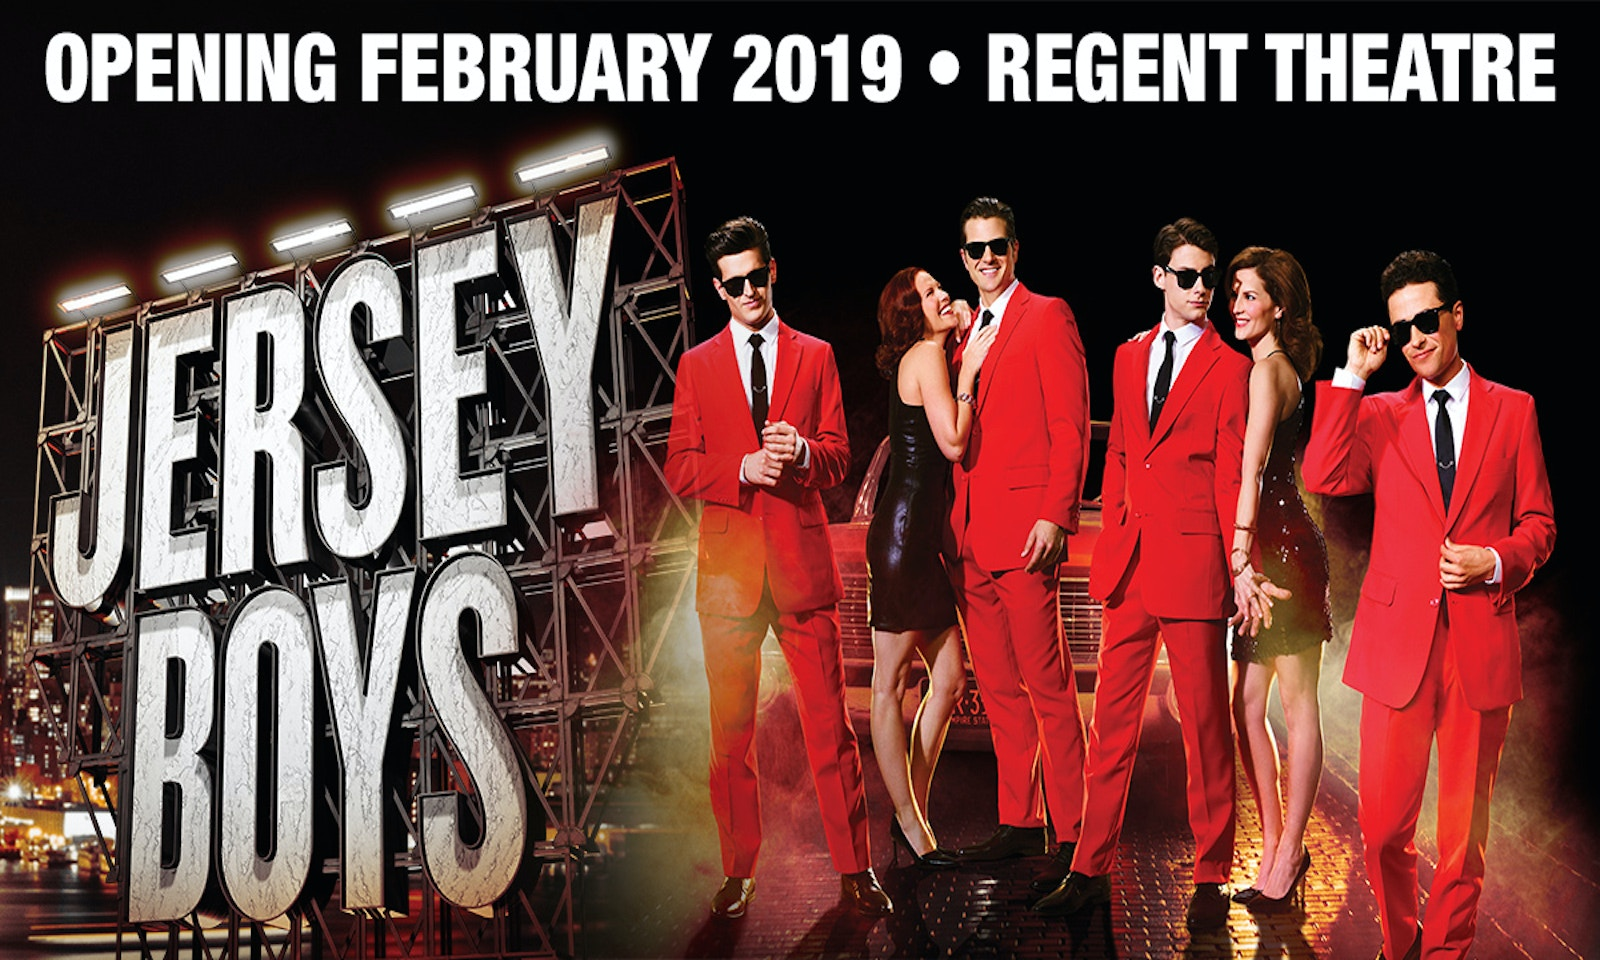 International Blockbuster Jersey Boys is Coming to Melbourne